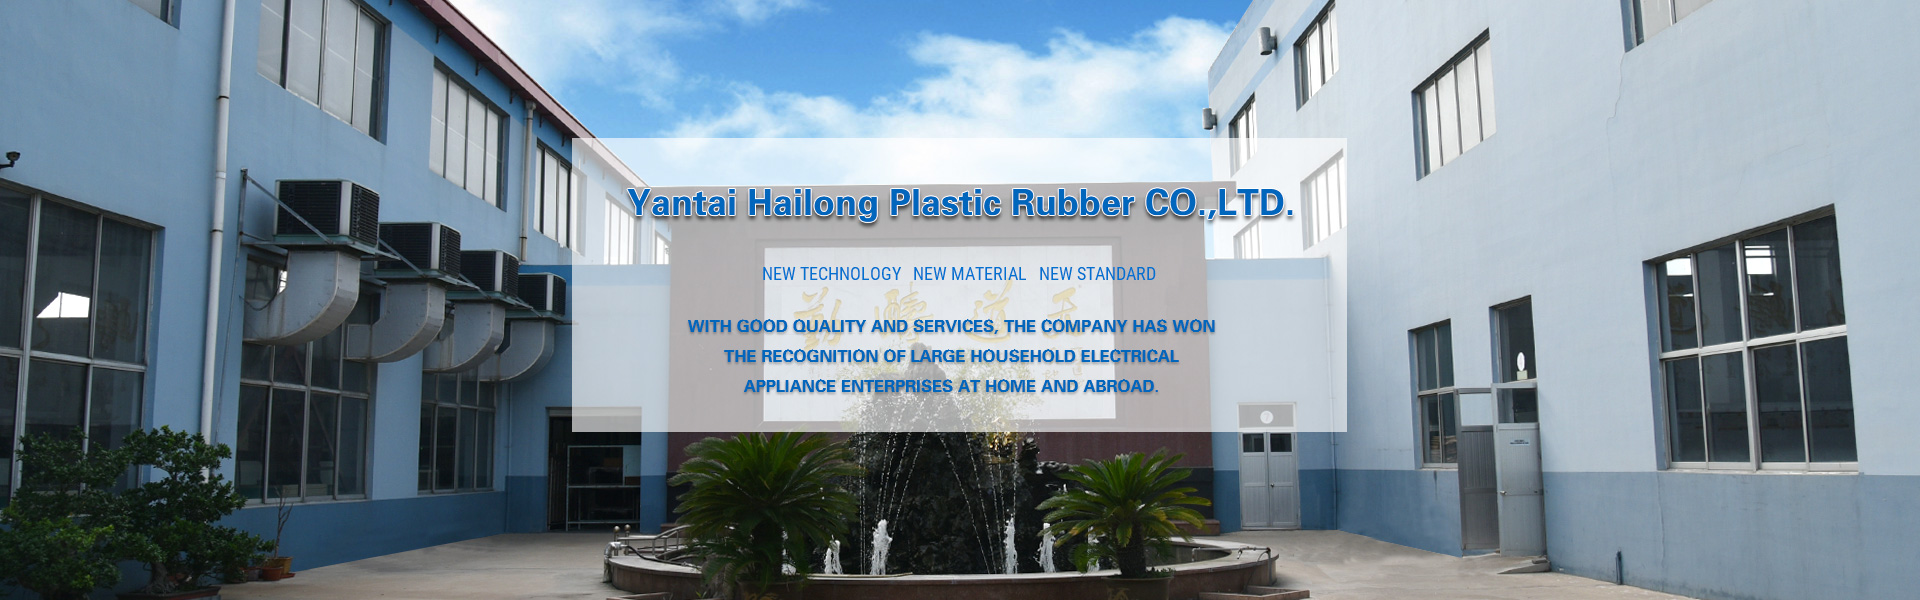 Yantai Hailong Plastic Rubber Co., Ltd2